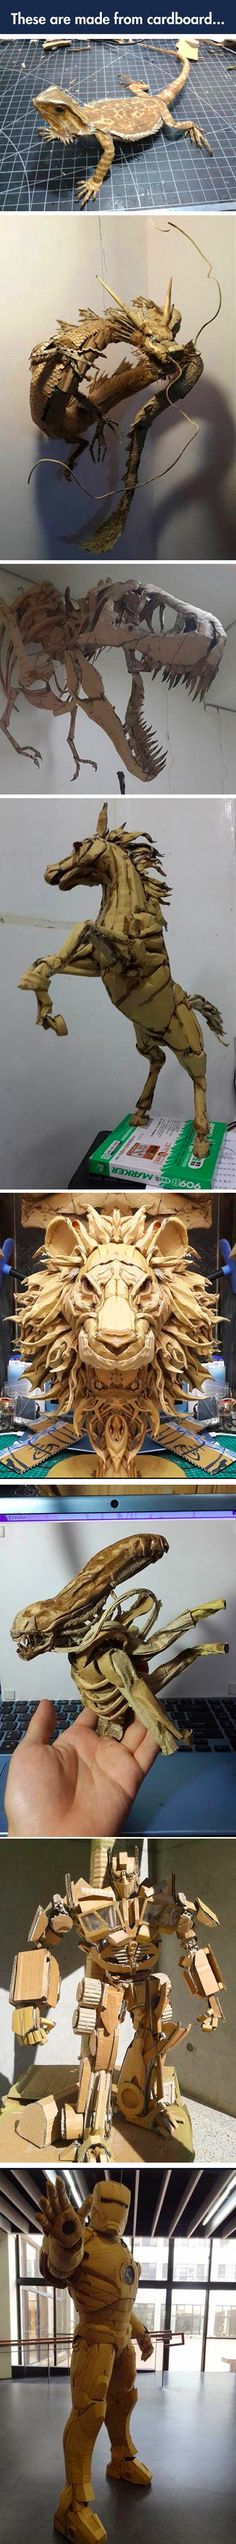 Here are some geeky things you will not believe were made with cardboard.